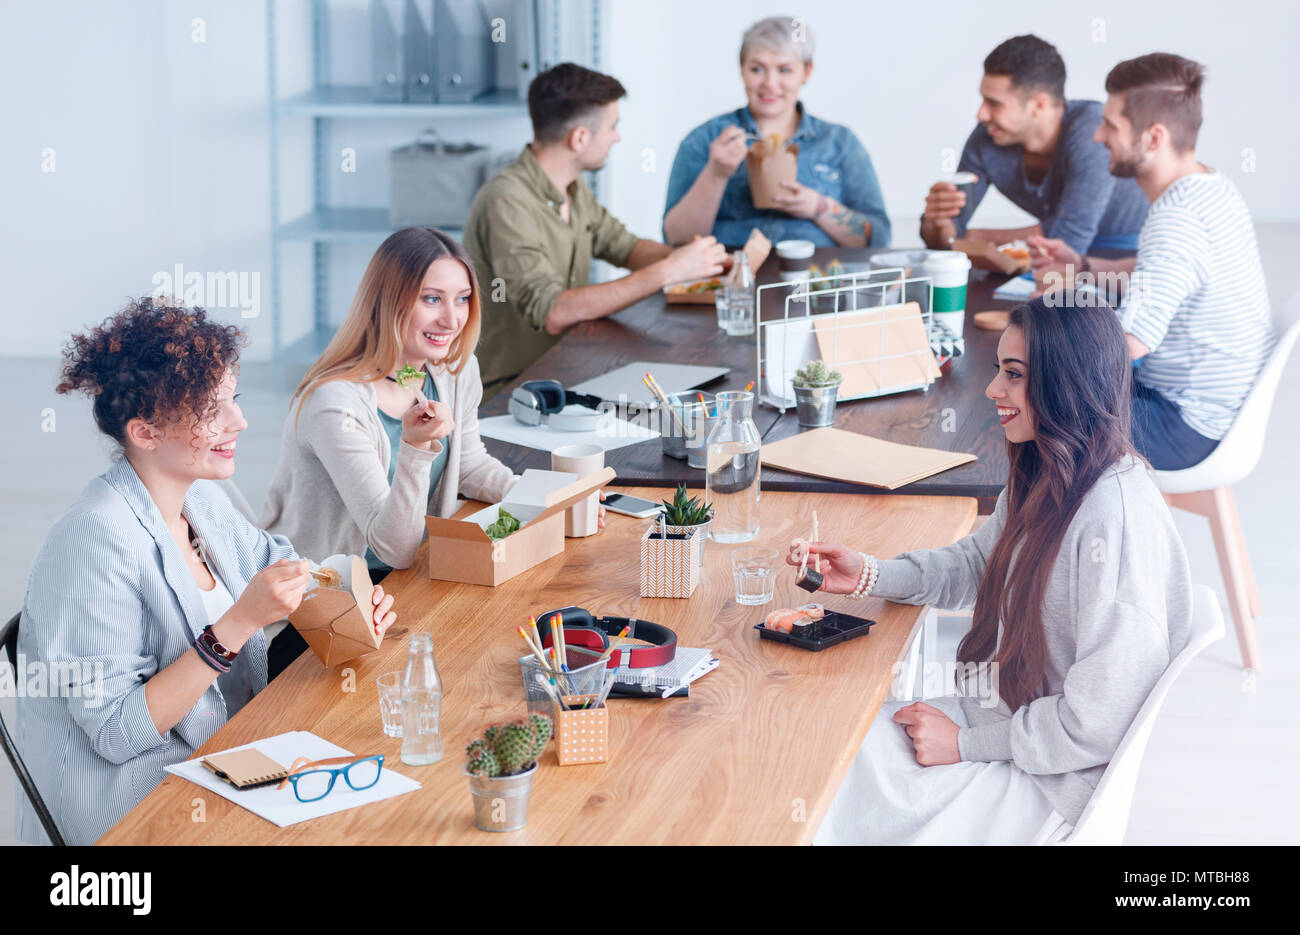 Colleagues chatting about a new concept in the office, during lunch break - Stock Image